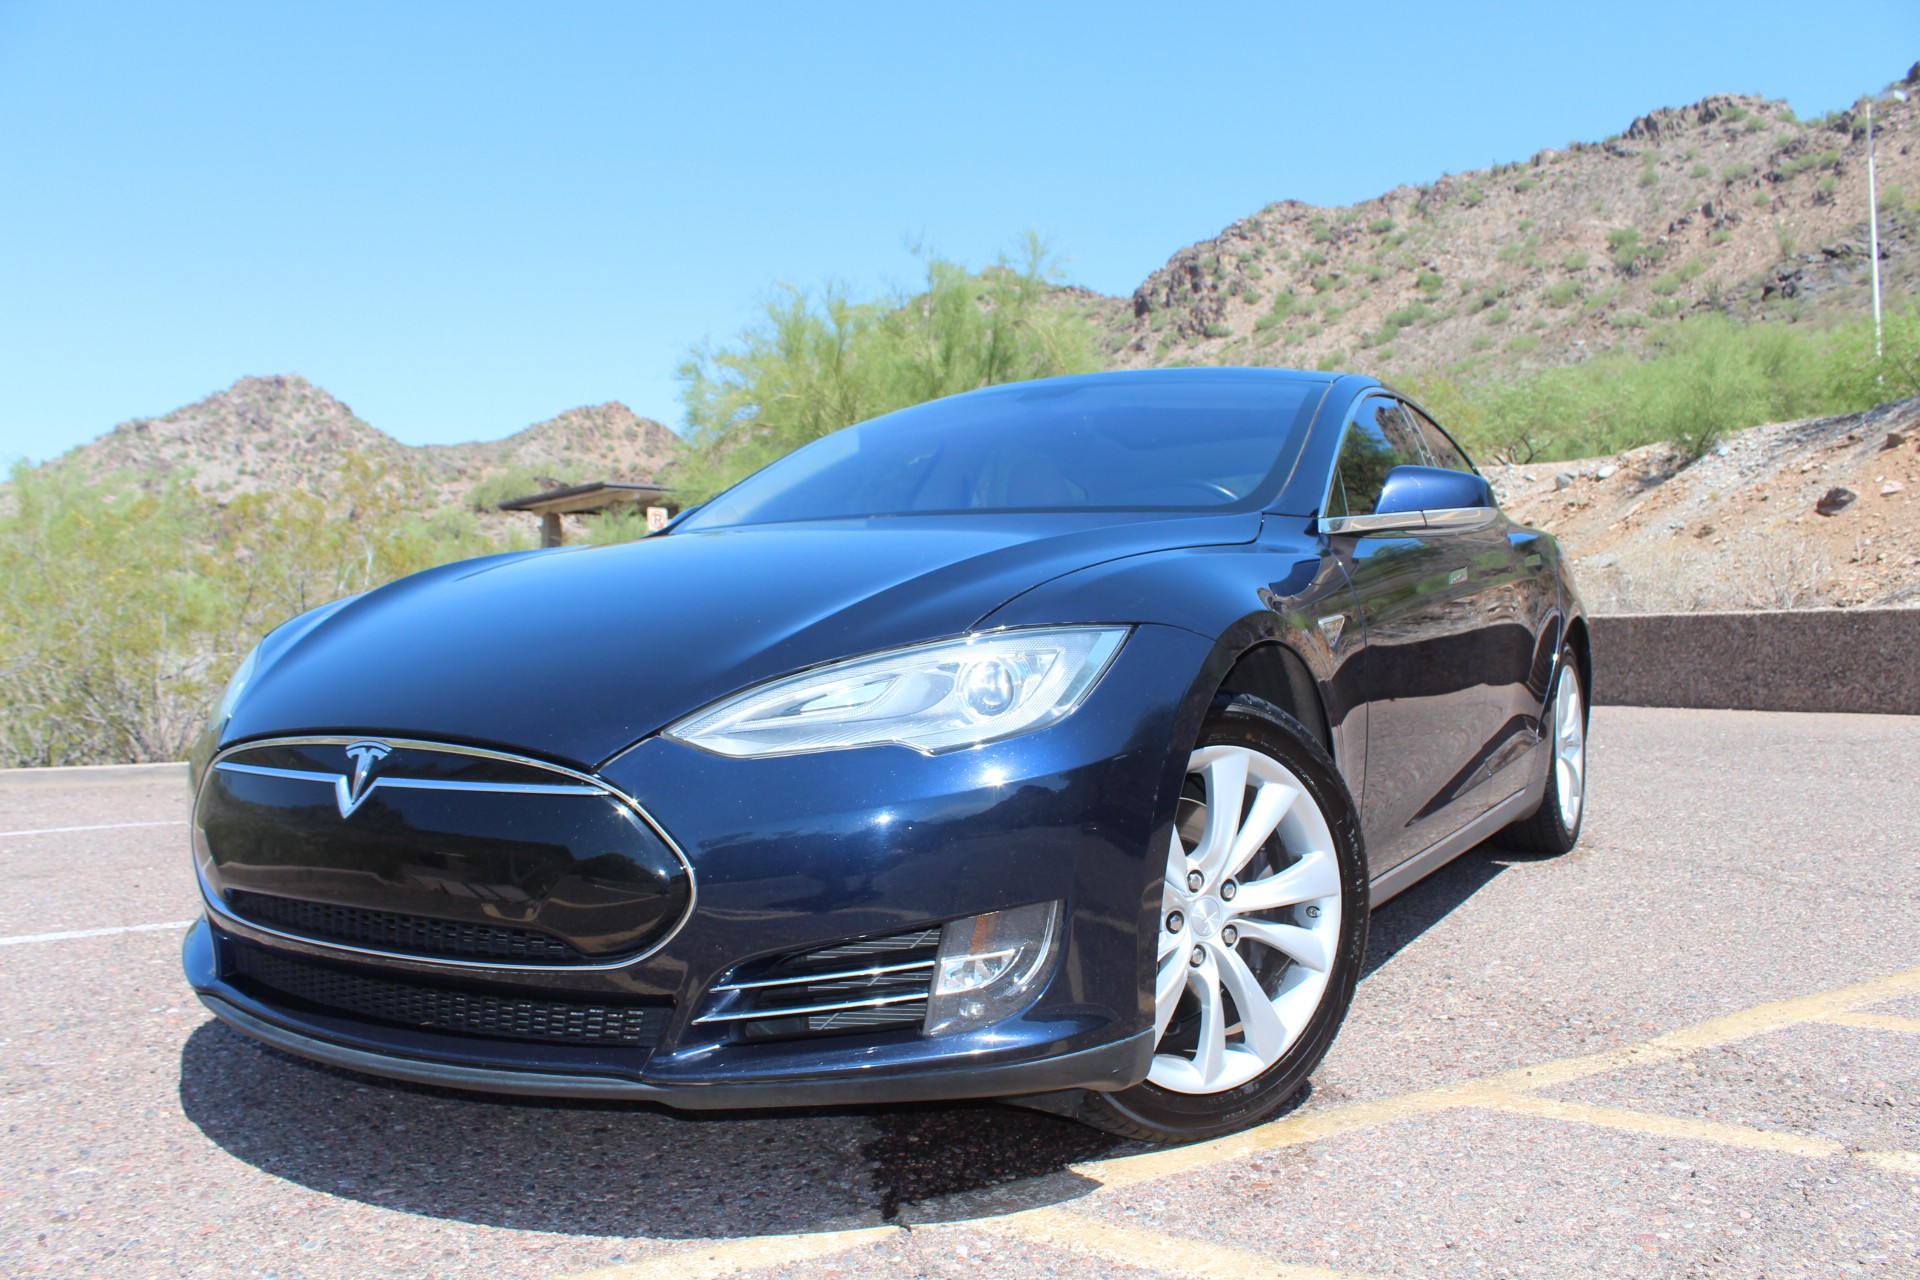 Miles And More Car Rental How I Used Abused My Tesla What A Tesla Looks Like After